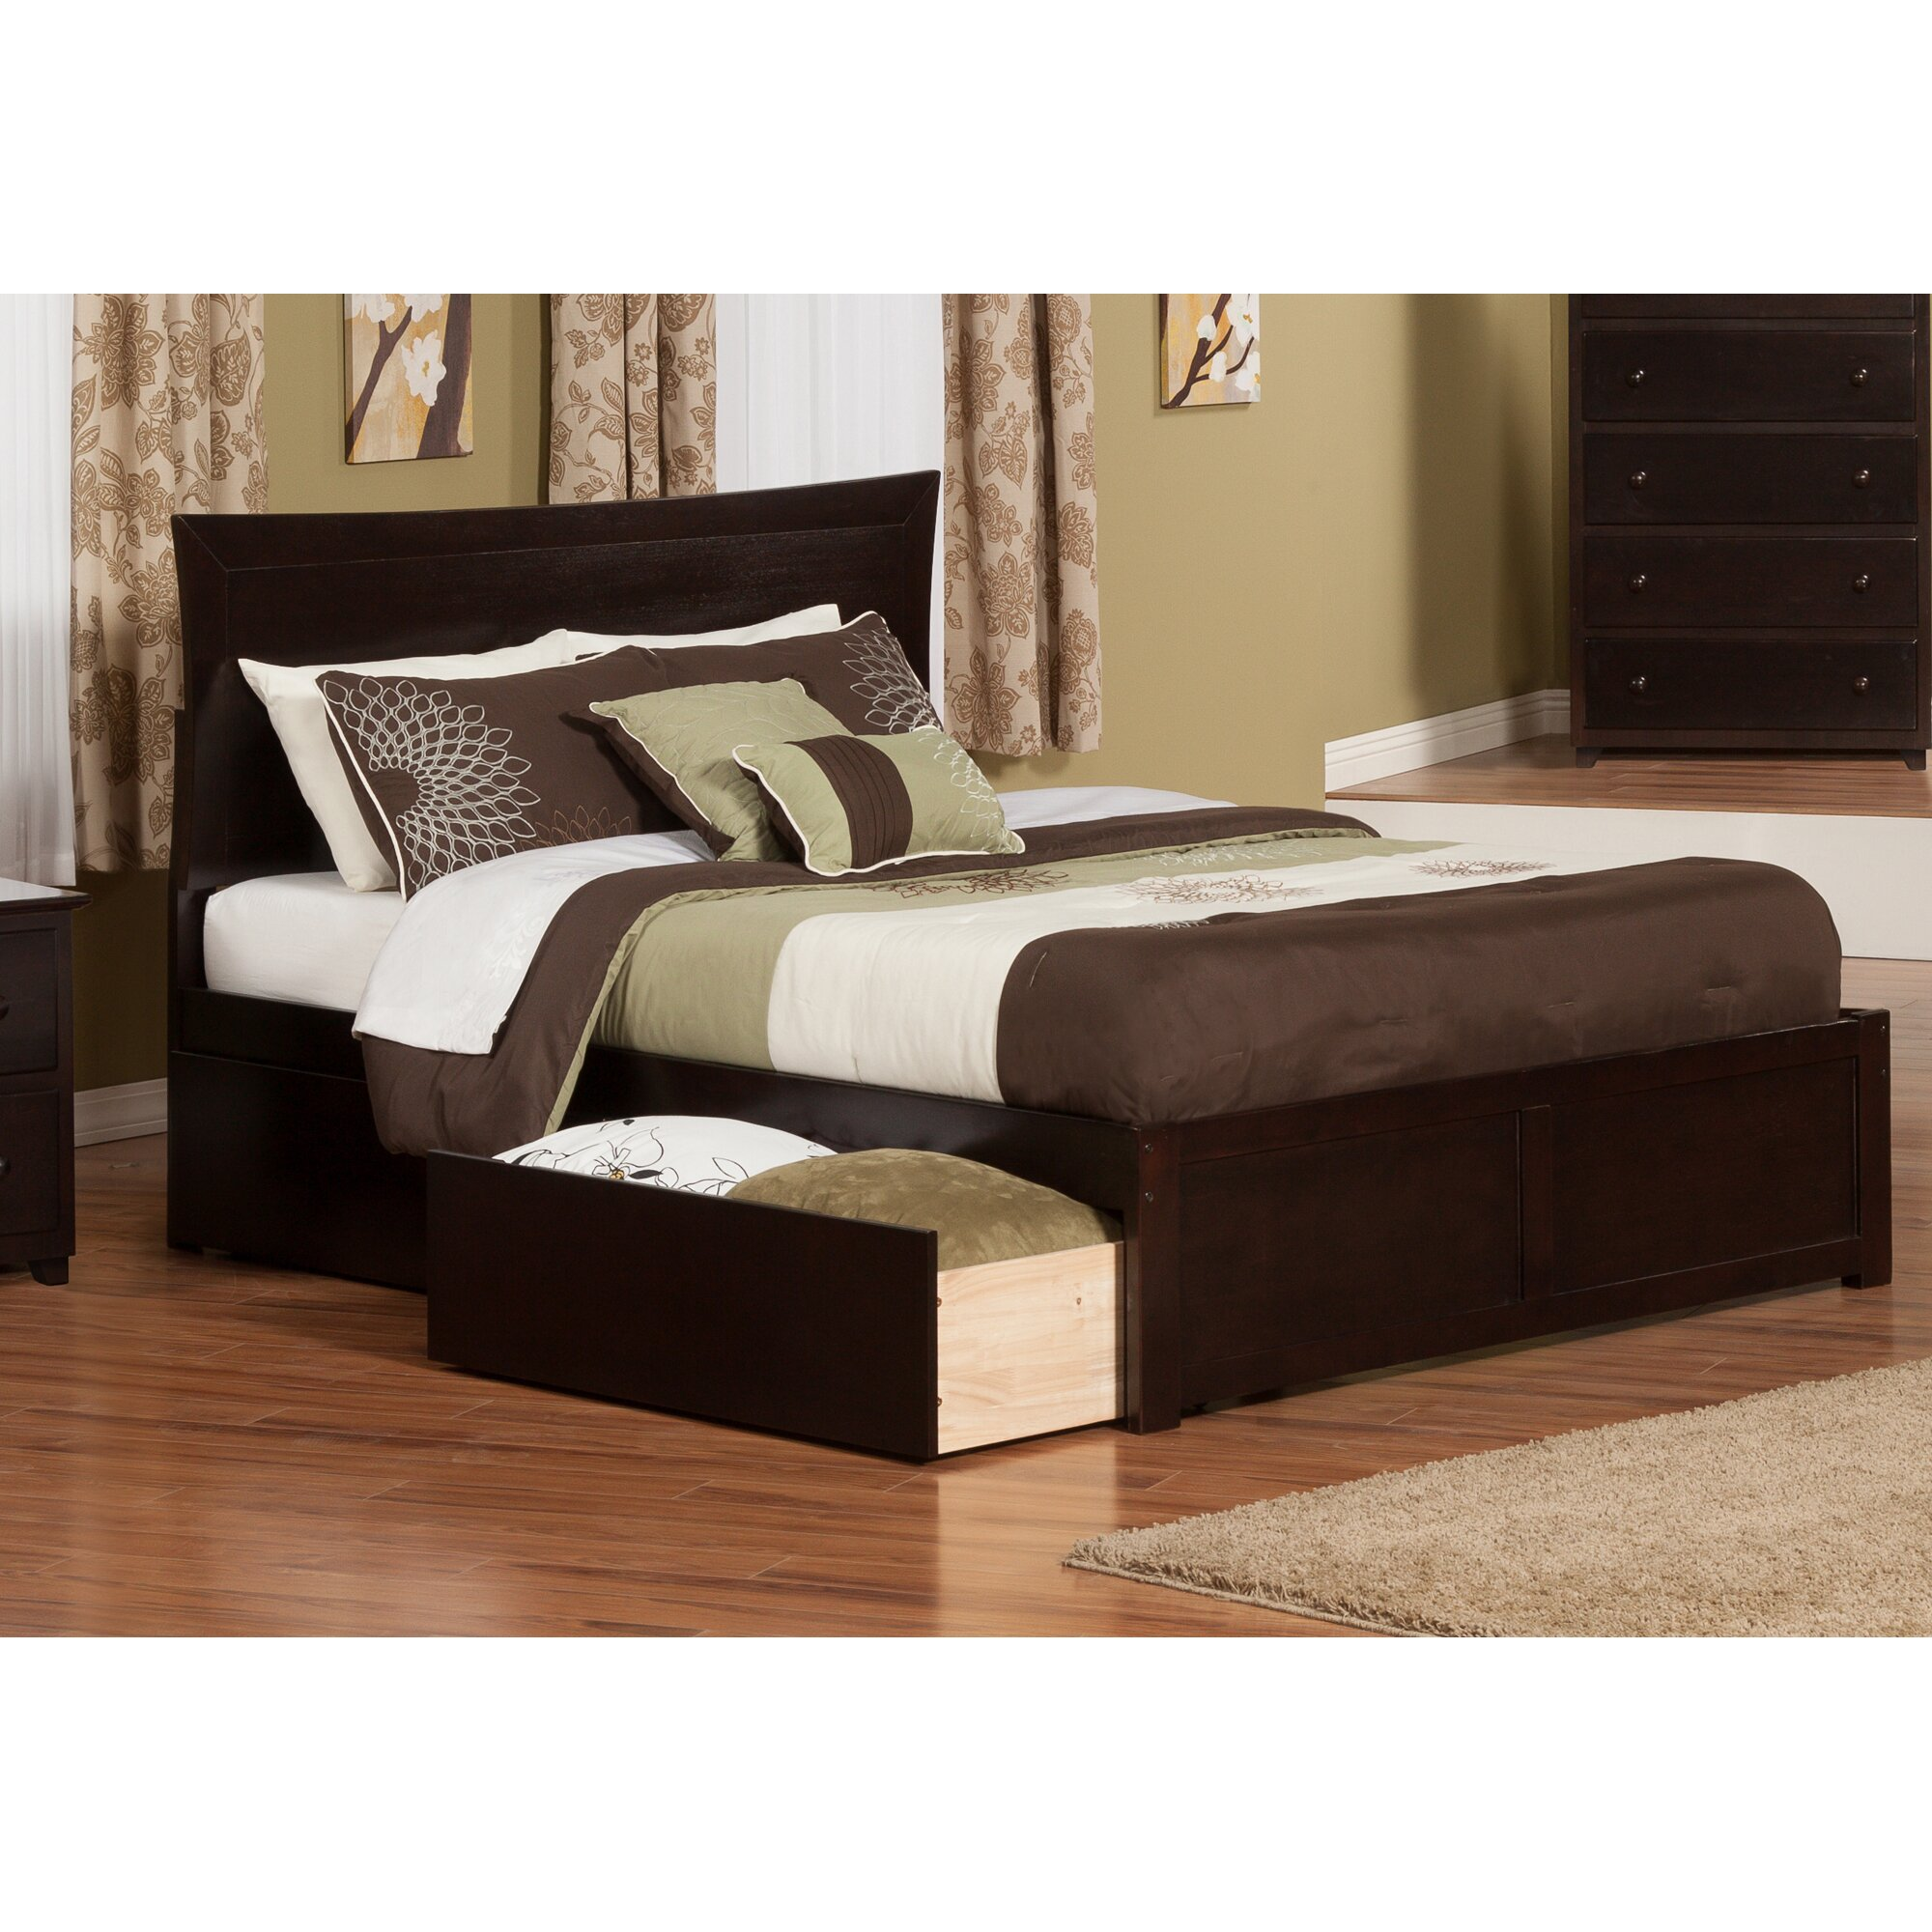 Viv rae maryanne king storage platform bed reviews Platform king bed